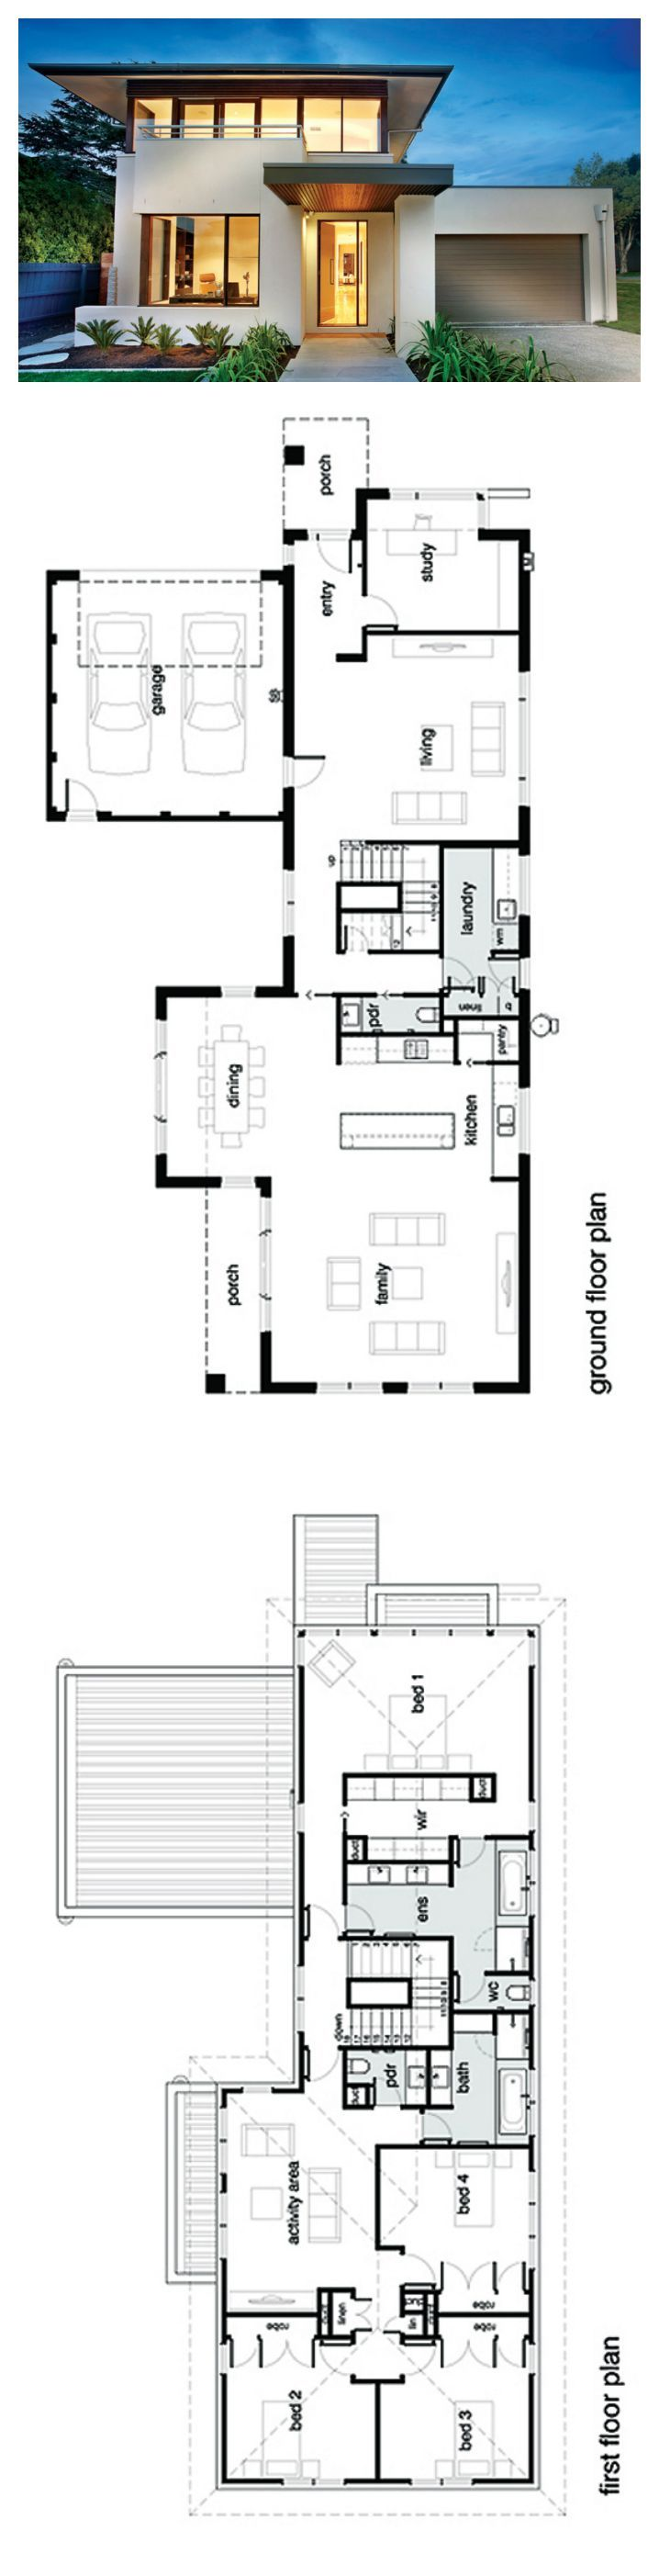 Best 25 modern house plans ideas on pinterest modern for Best modern home plans